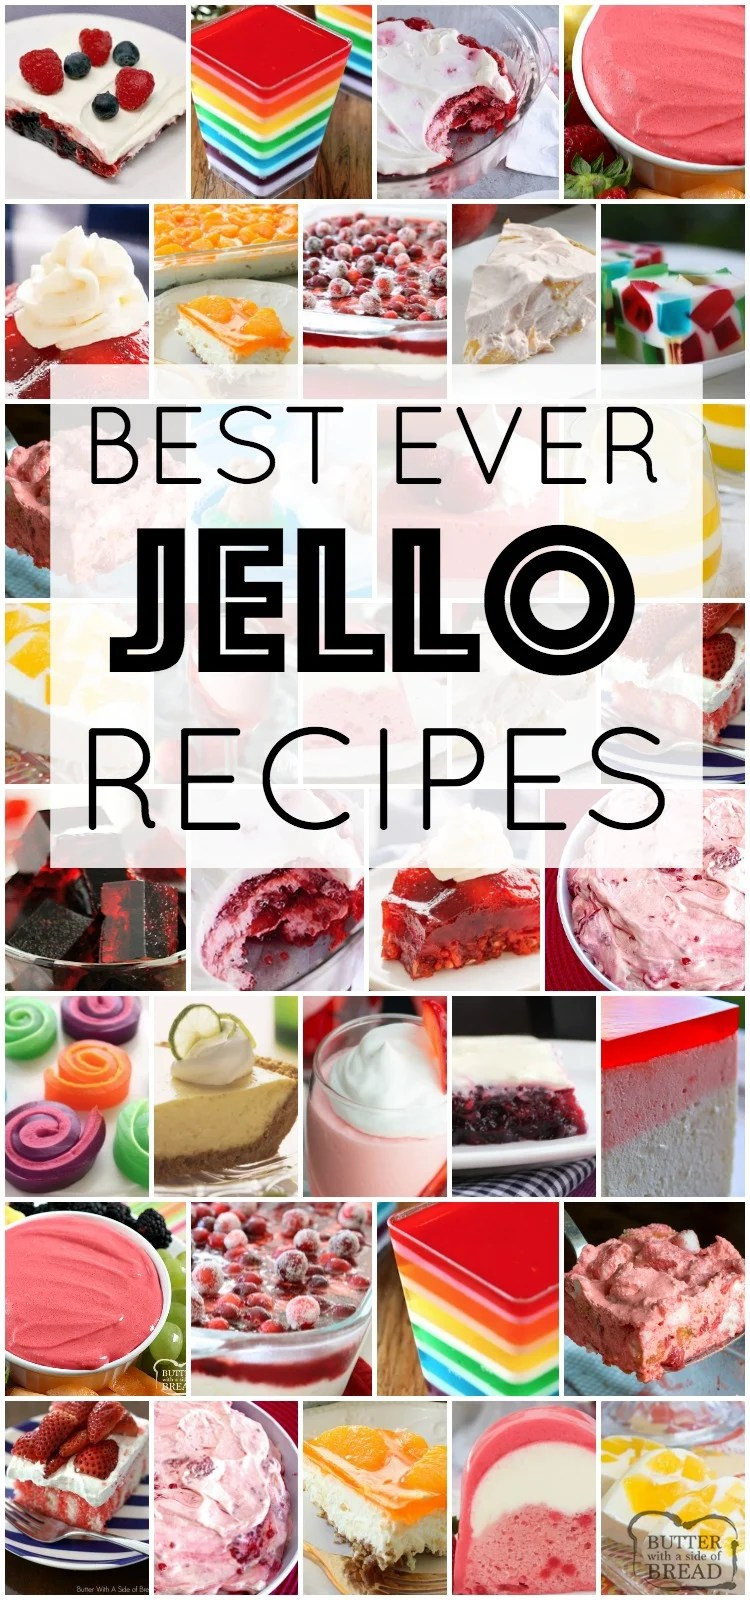 BEST Jello recipes ever, all gathered in one place! Jello recipes for holidays, parties, dessert and more. We cover jello salad recipes, jello cakes and cookies and layered jello desserts. Fun, tasty & easy jello recipes for any occasion.